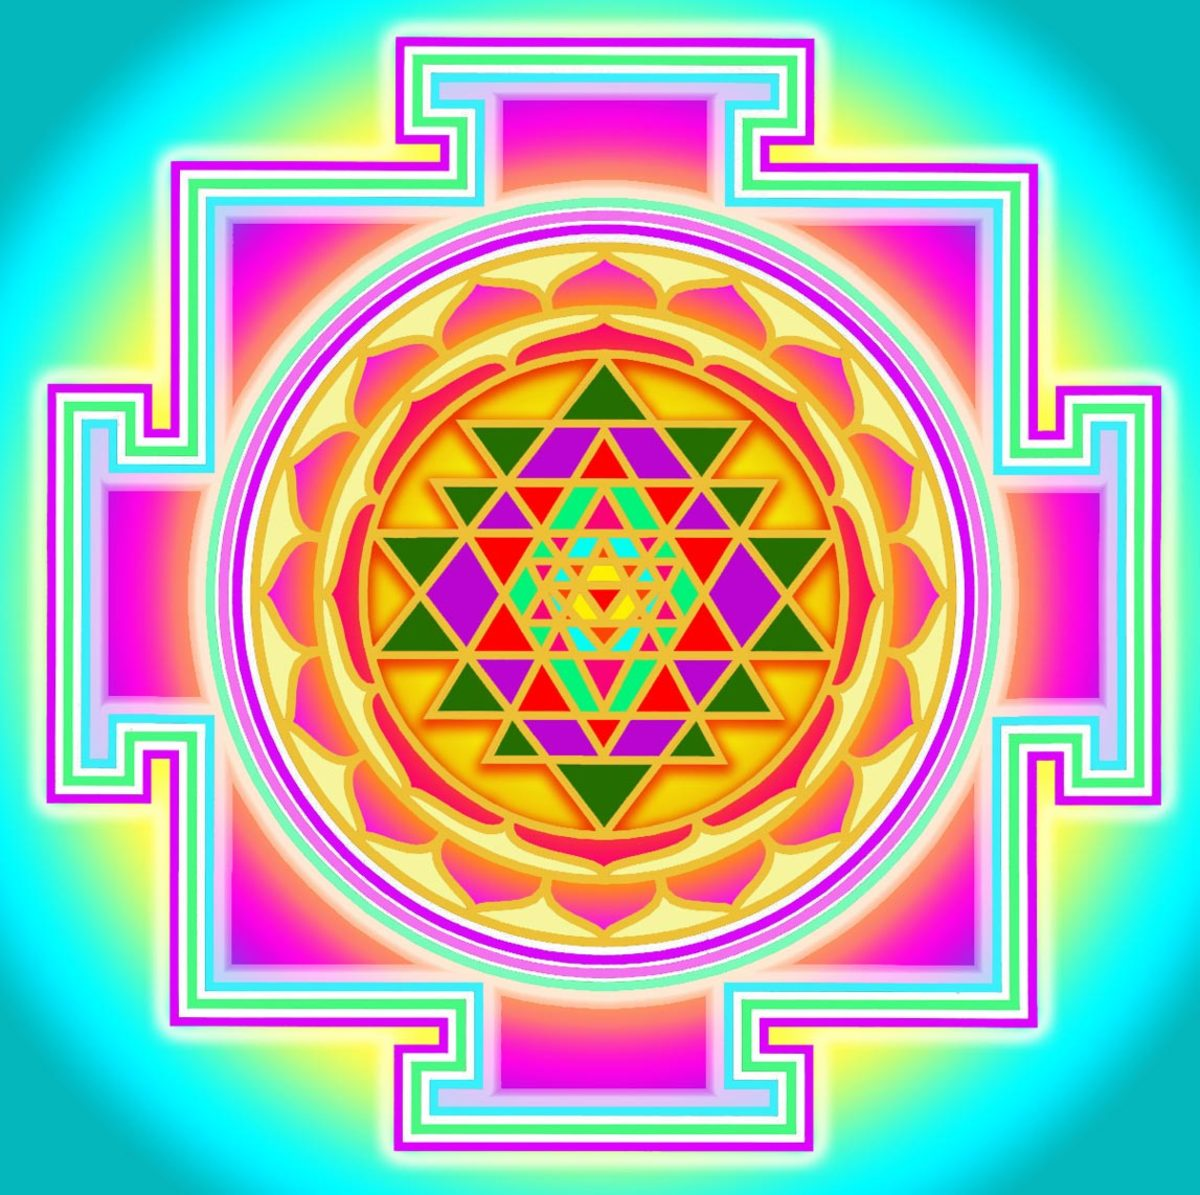 Sri Yantra's center represents a junction between physical reality and unmanifested reality.